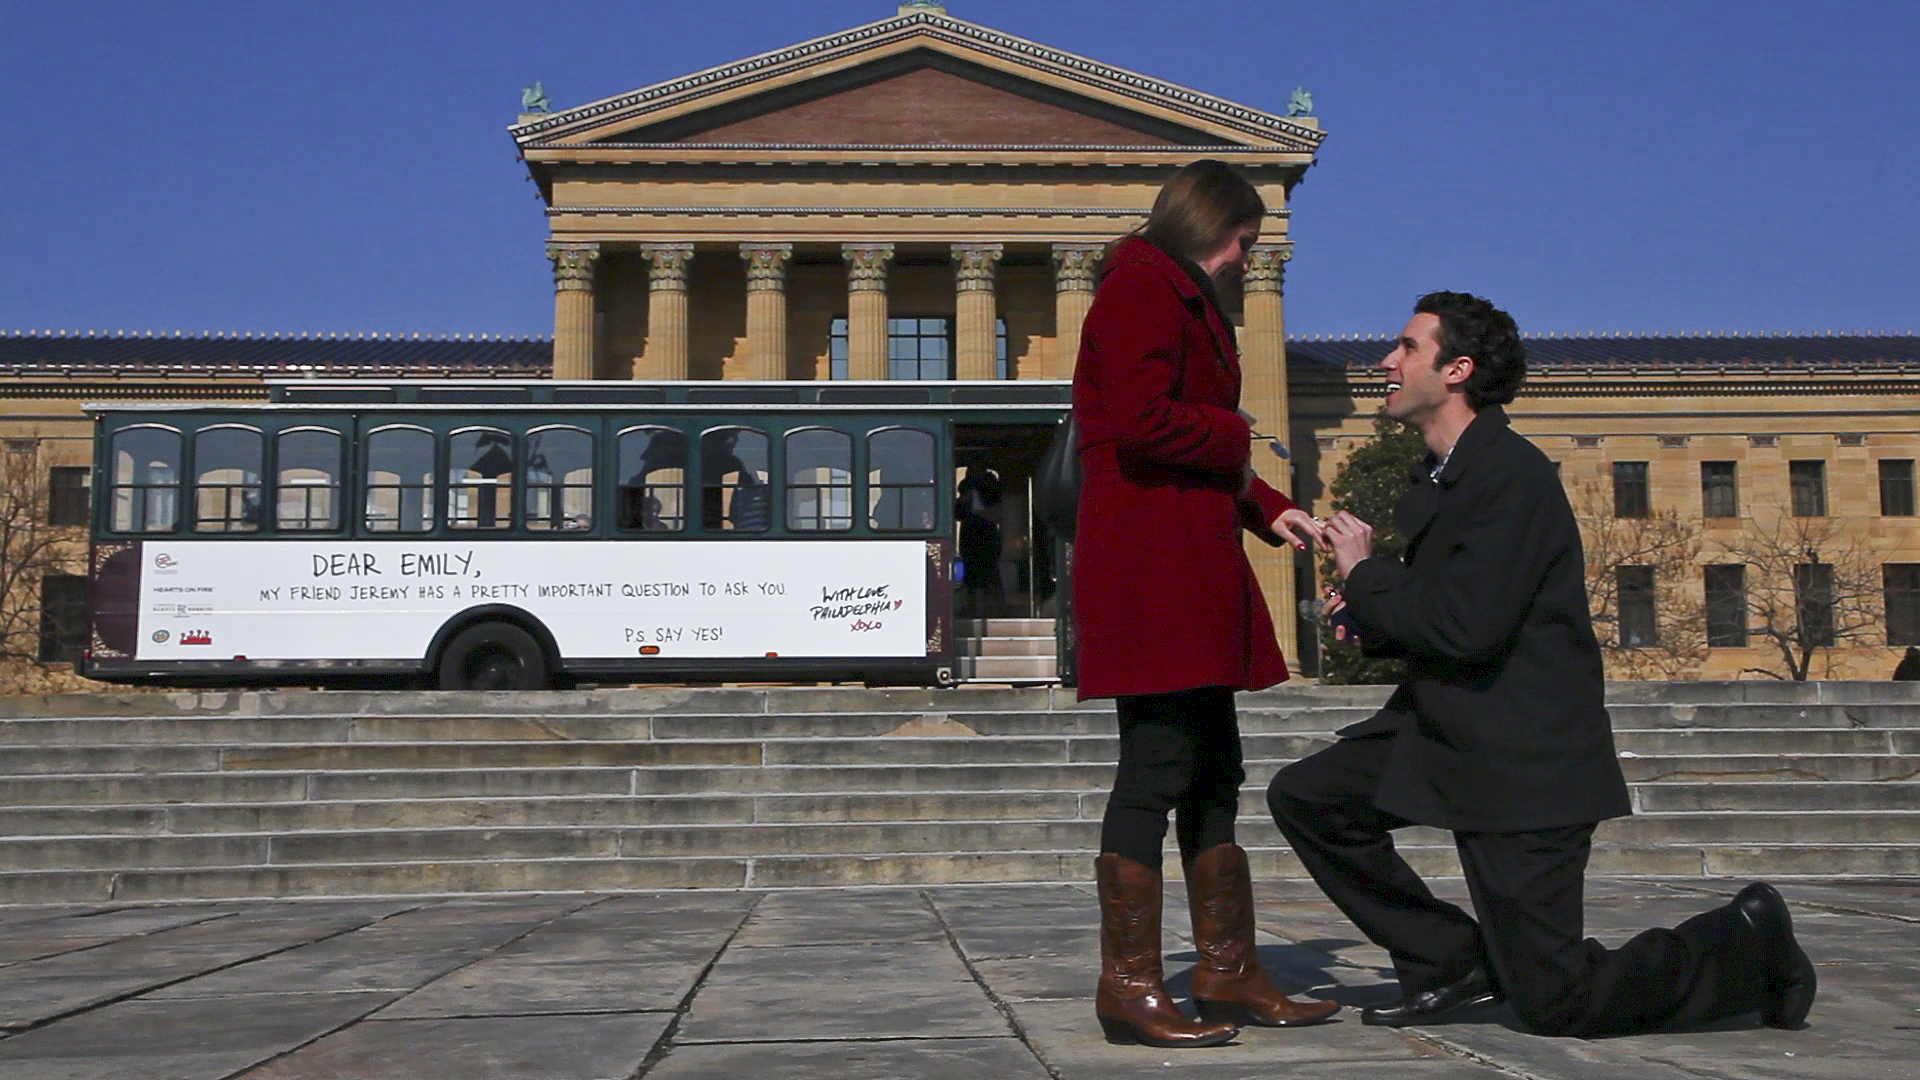 Jeremy Kaplan Proposes to Emily Schrag on Valentine's Day